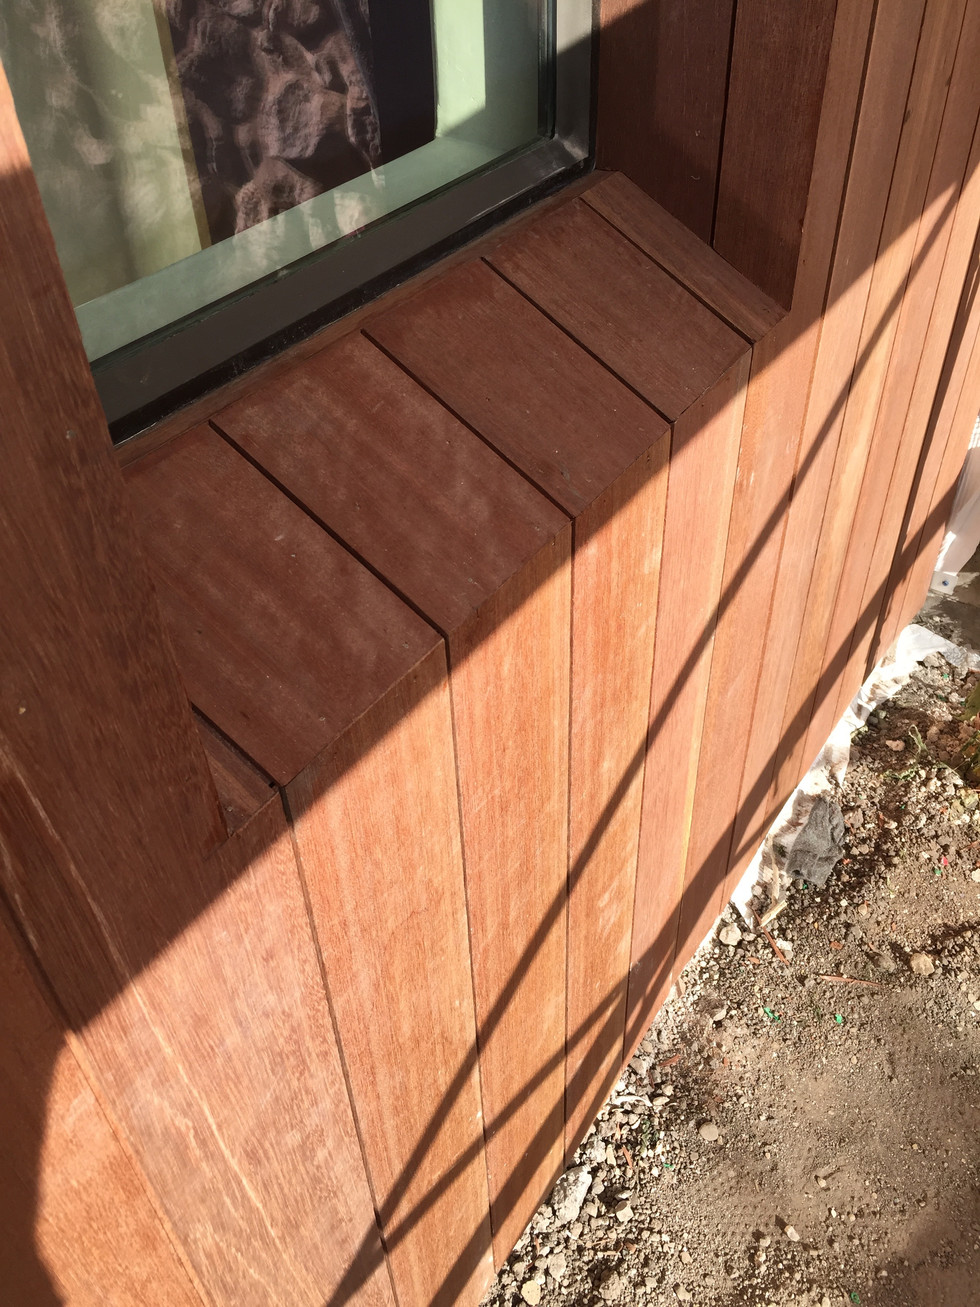 Ipe Wood Clad, sloped Window Sill -- La Ladera Residence - Santa Barbara, California